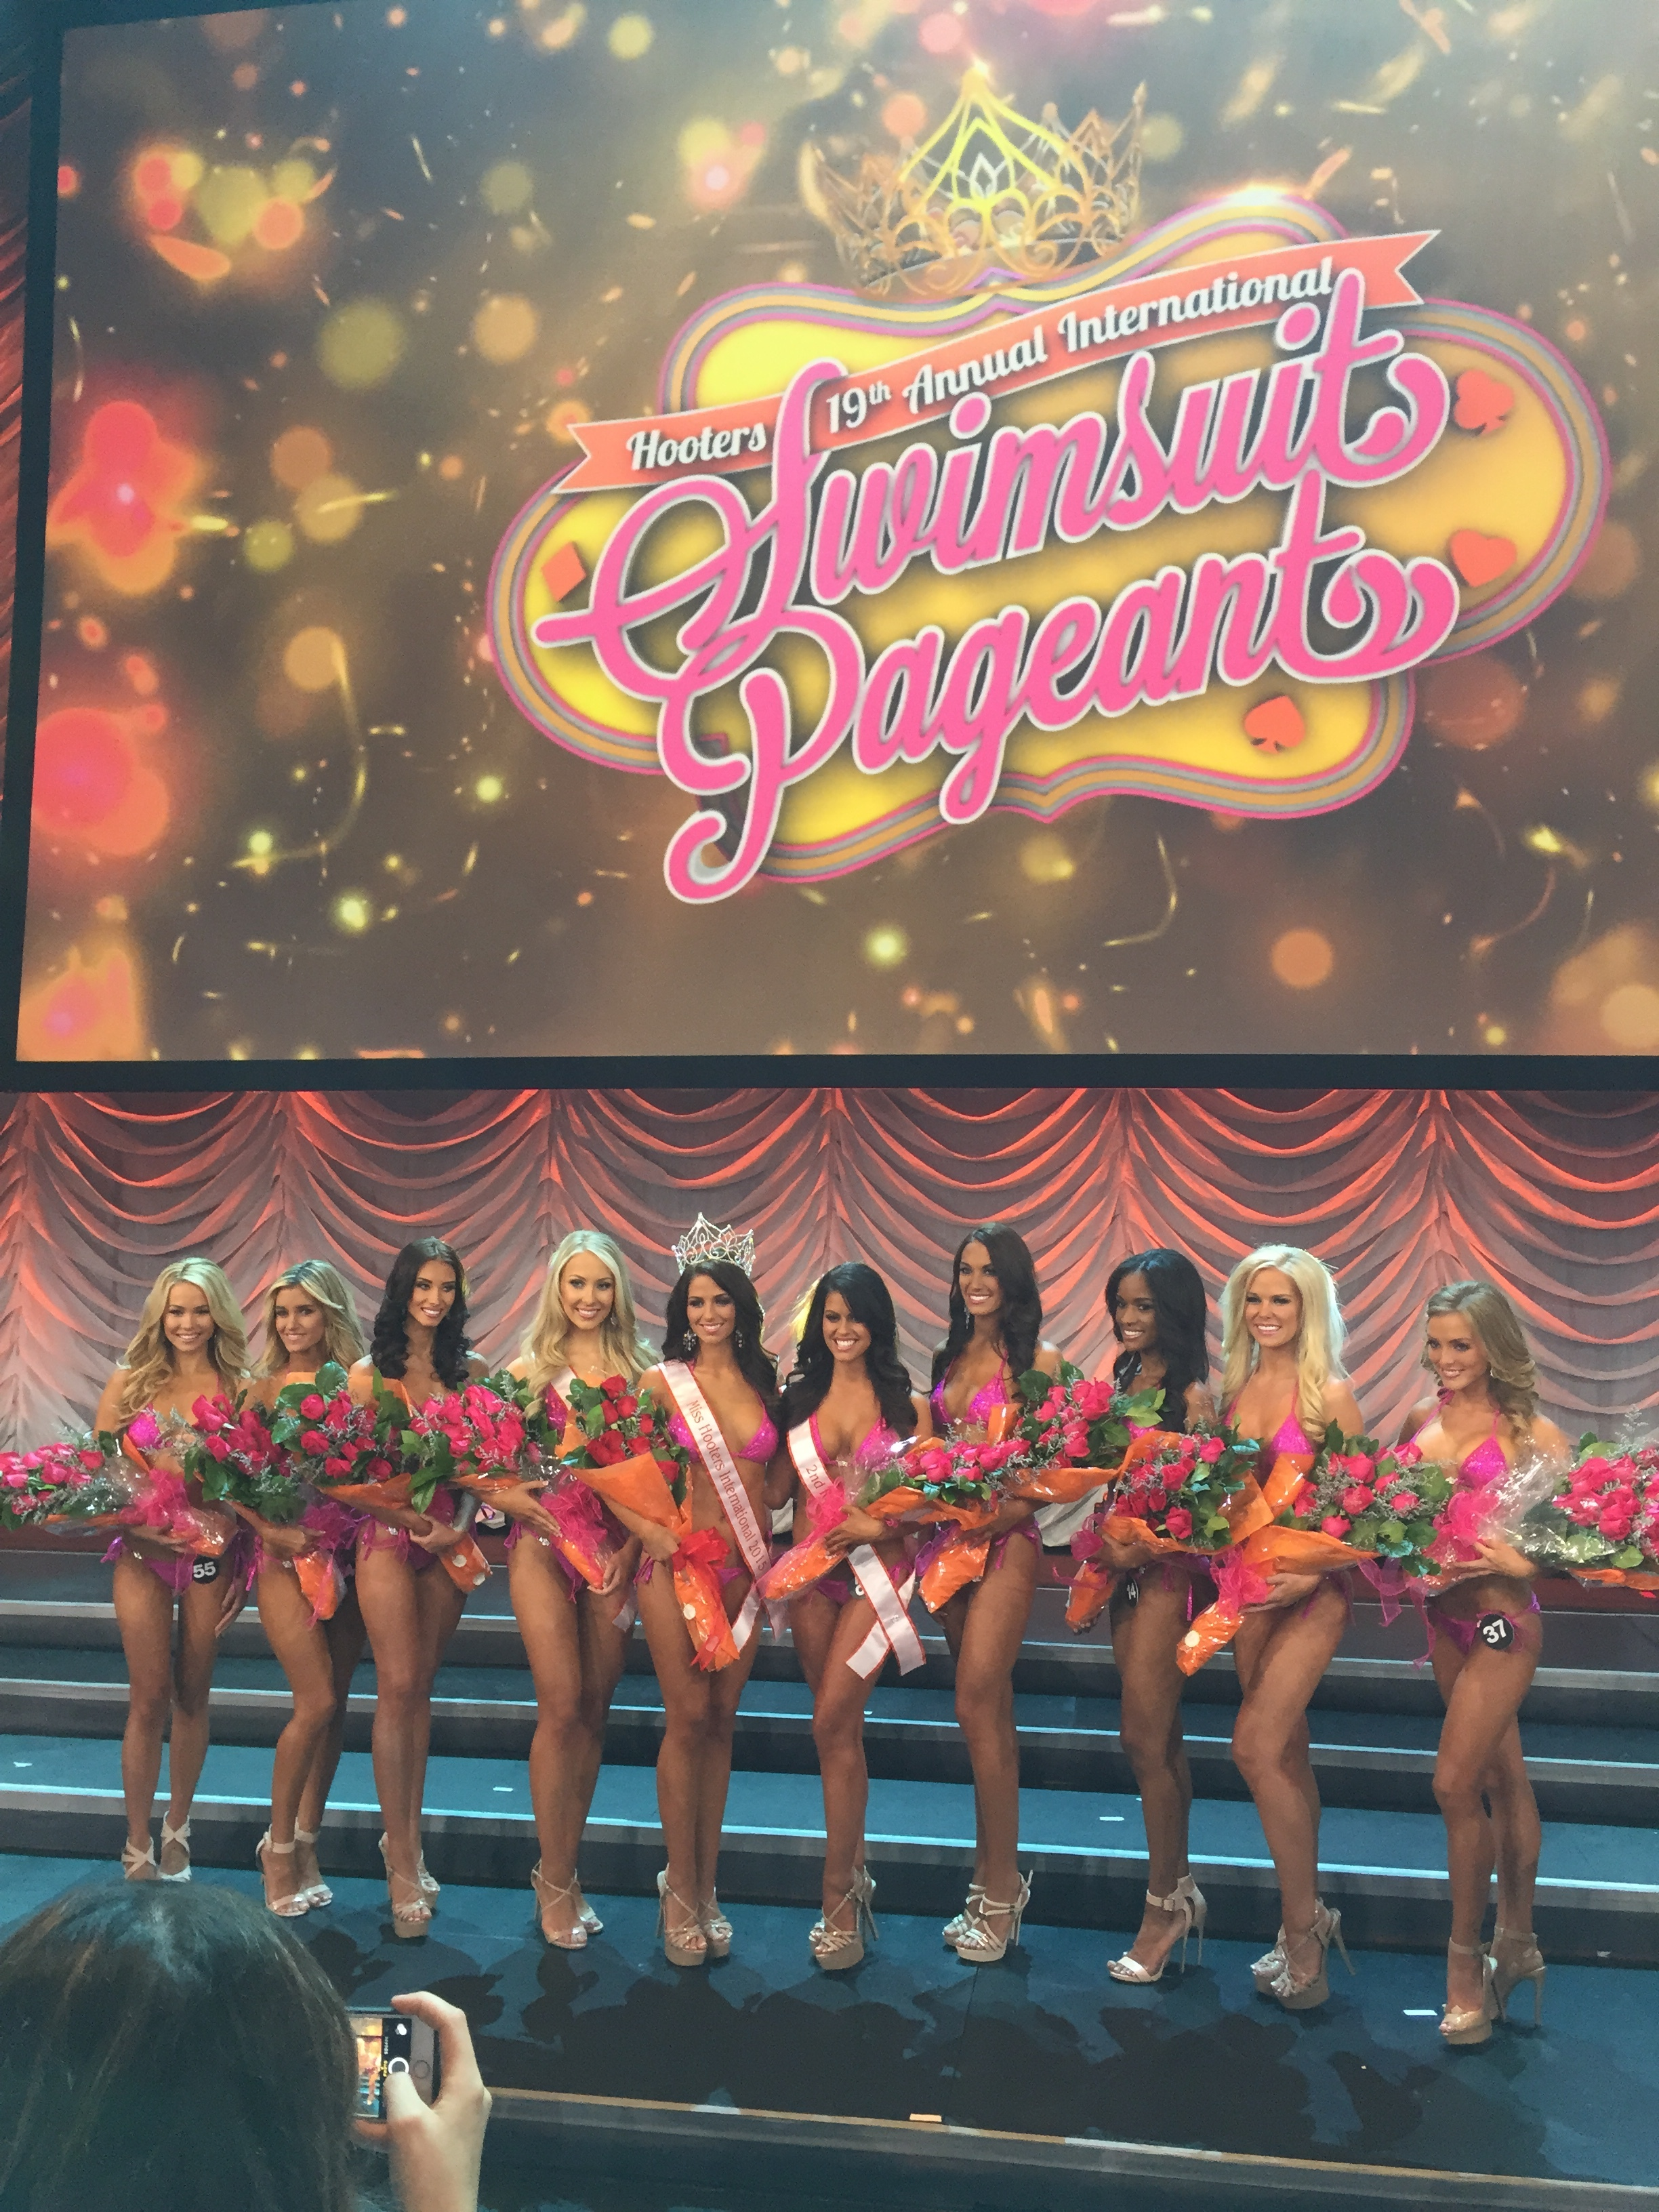 Working with Kathy Moberly and team in vegas for the Miss Hooters International Pageant